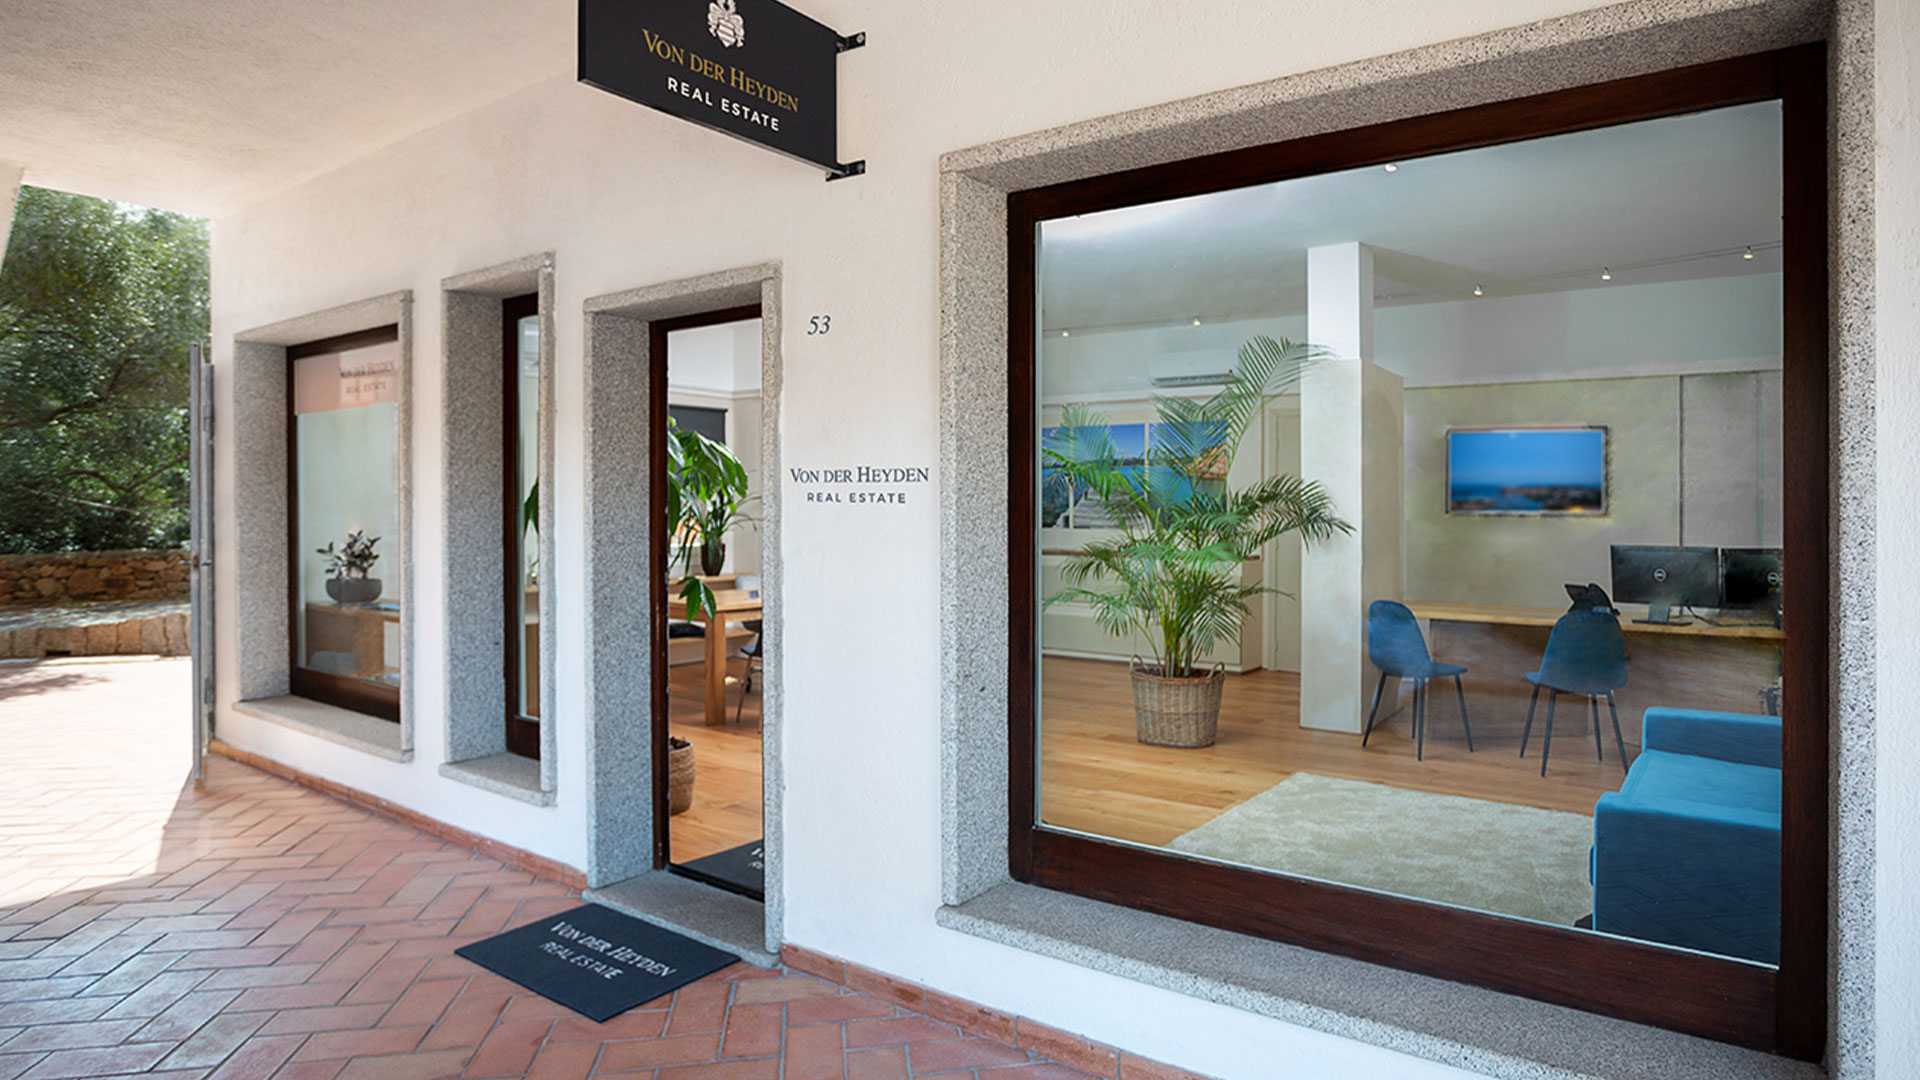 4 Office Vdhre Porto Cervo